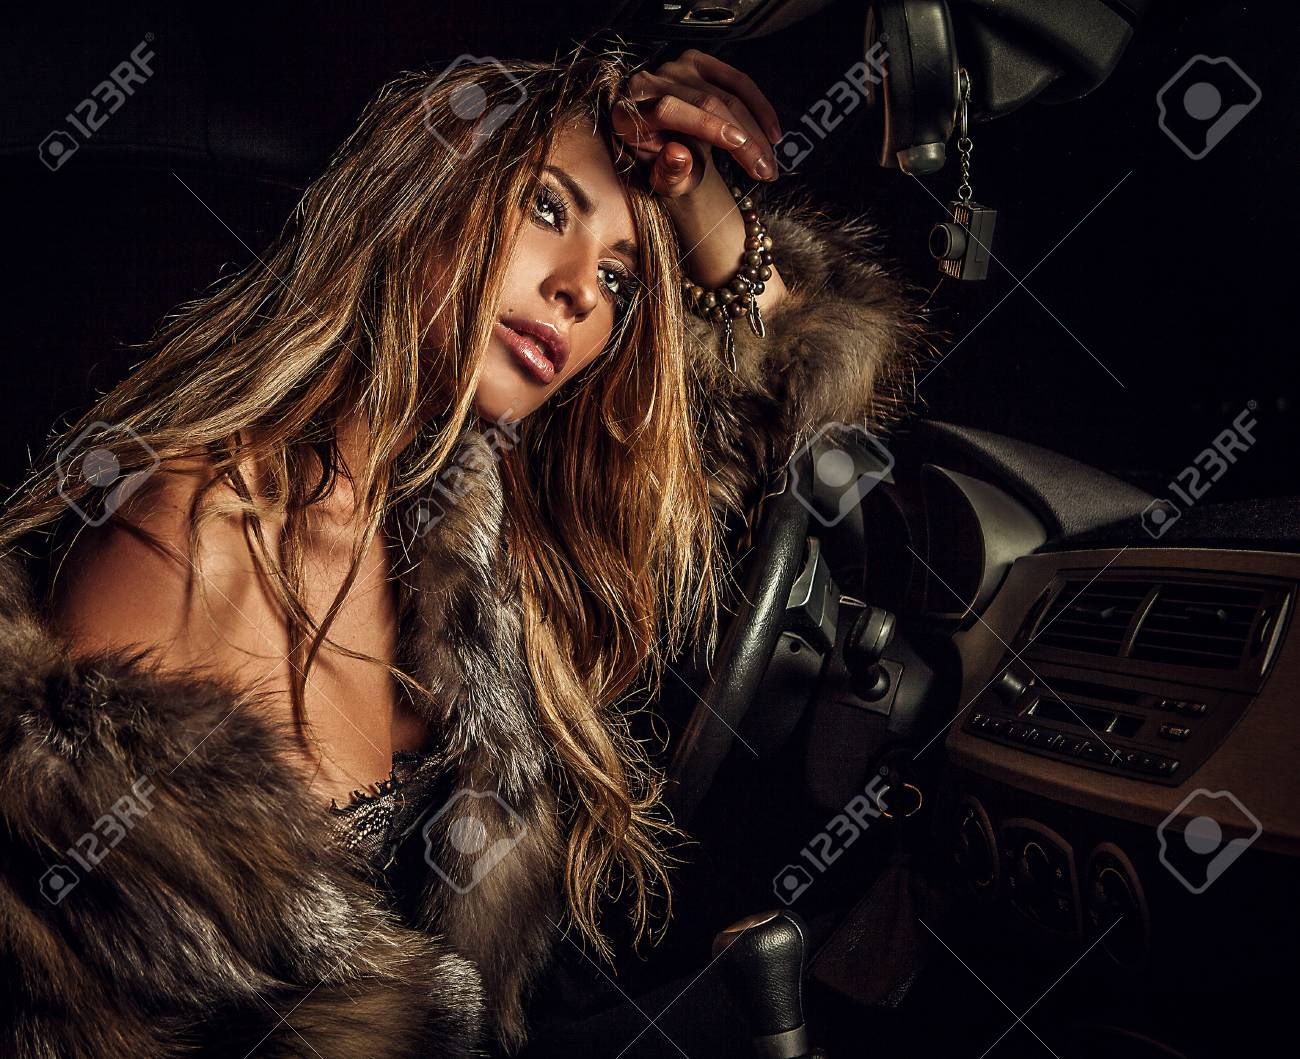 Luxury woman in a car Stock Photo - 17130103